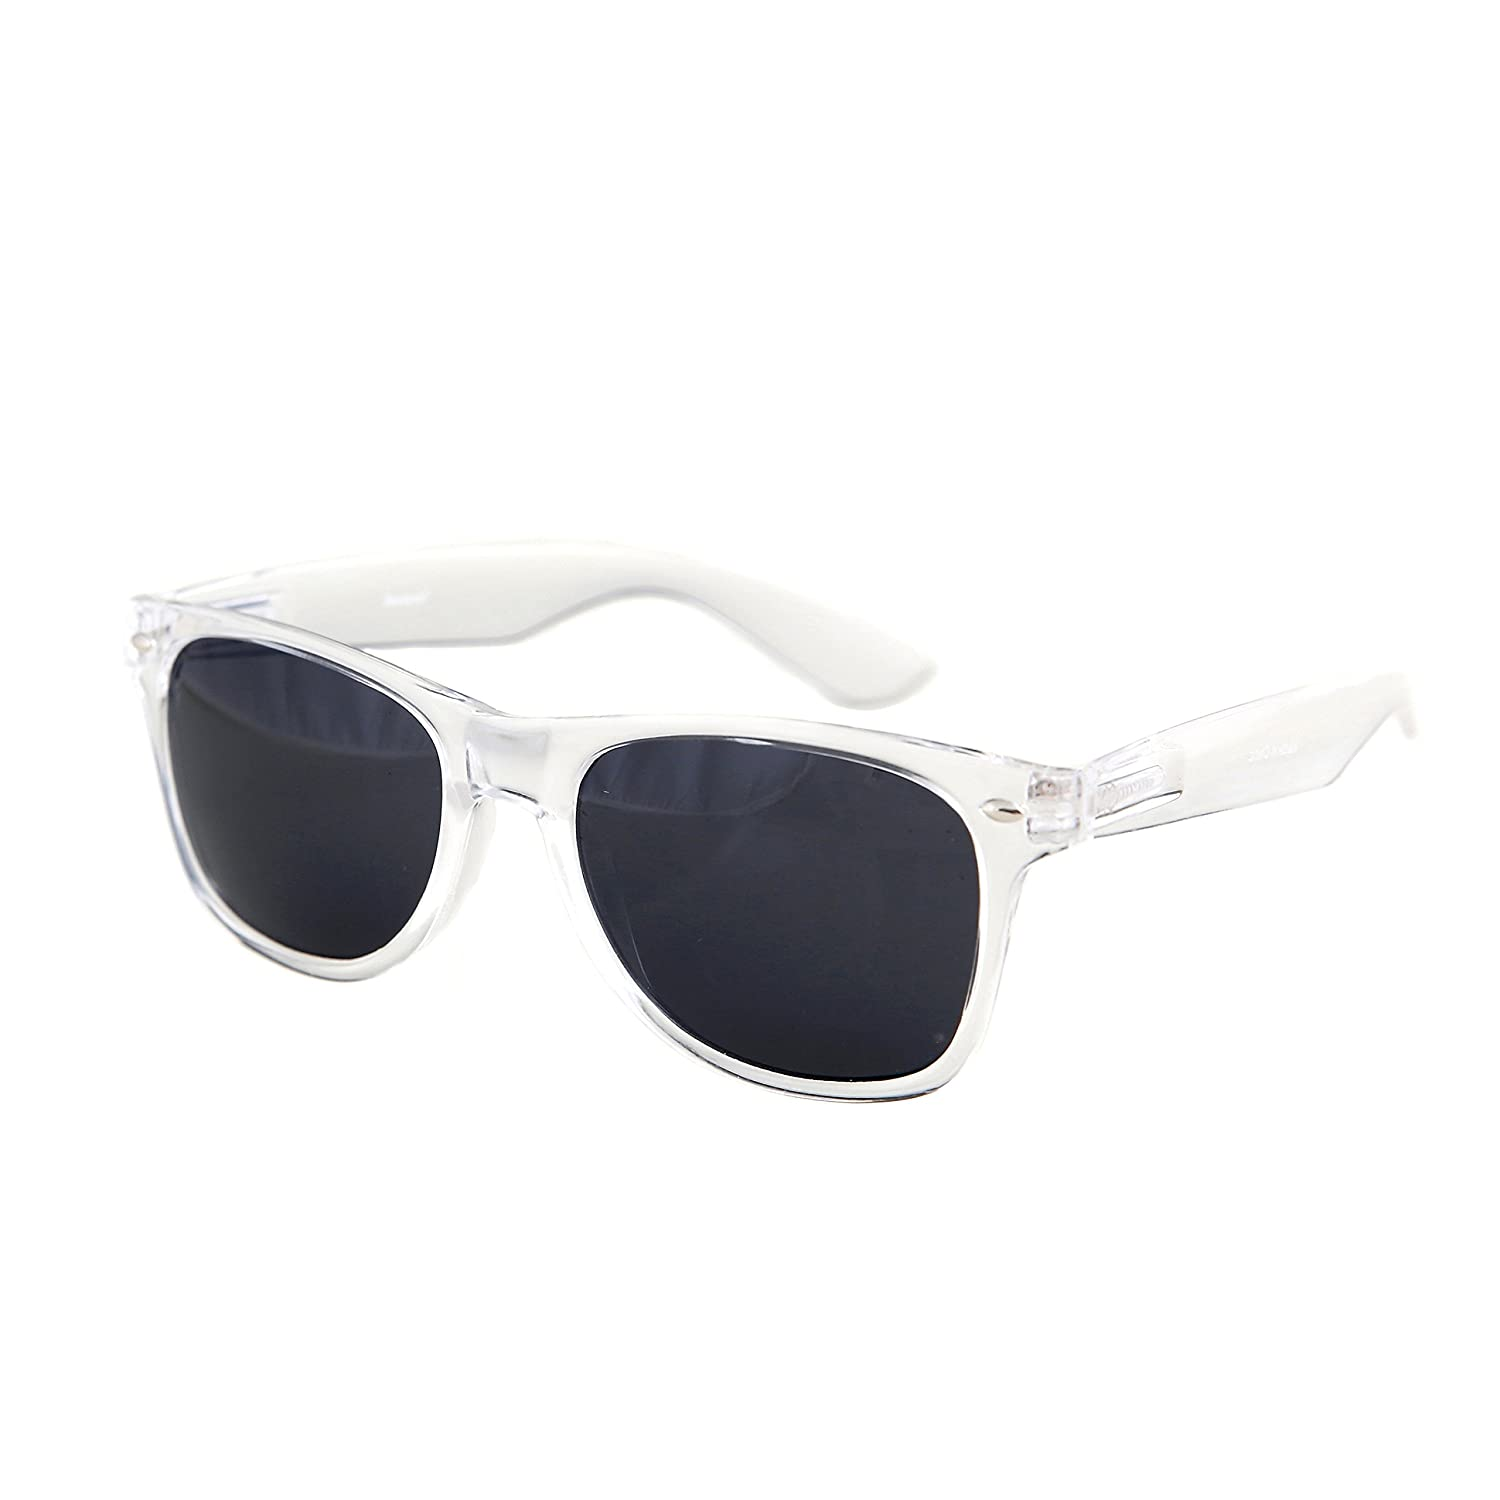 12ee8aa2ff Amazon.com  Shaderz Sunglasses Classic Clear Frame Retro 80 s Black Lense   Clothing